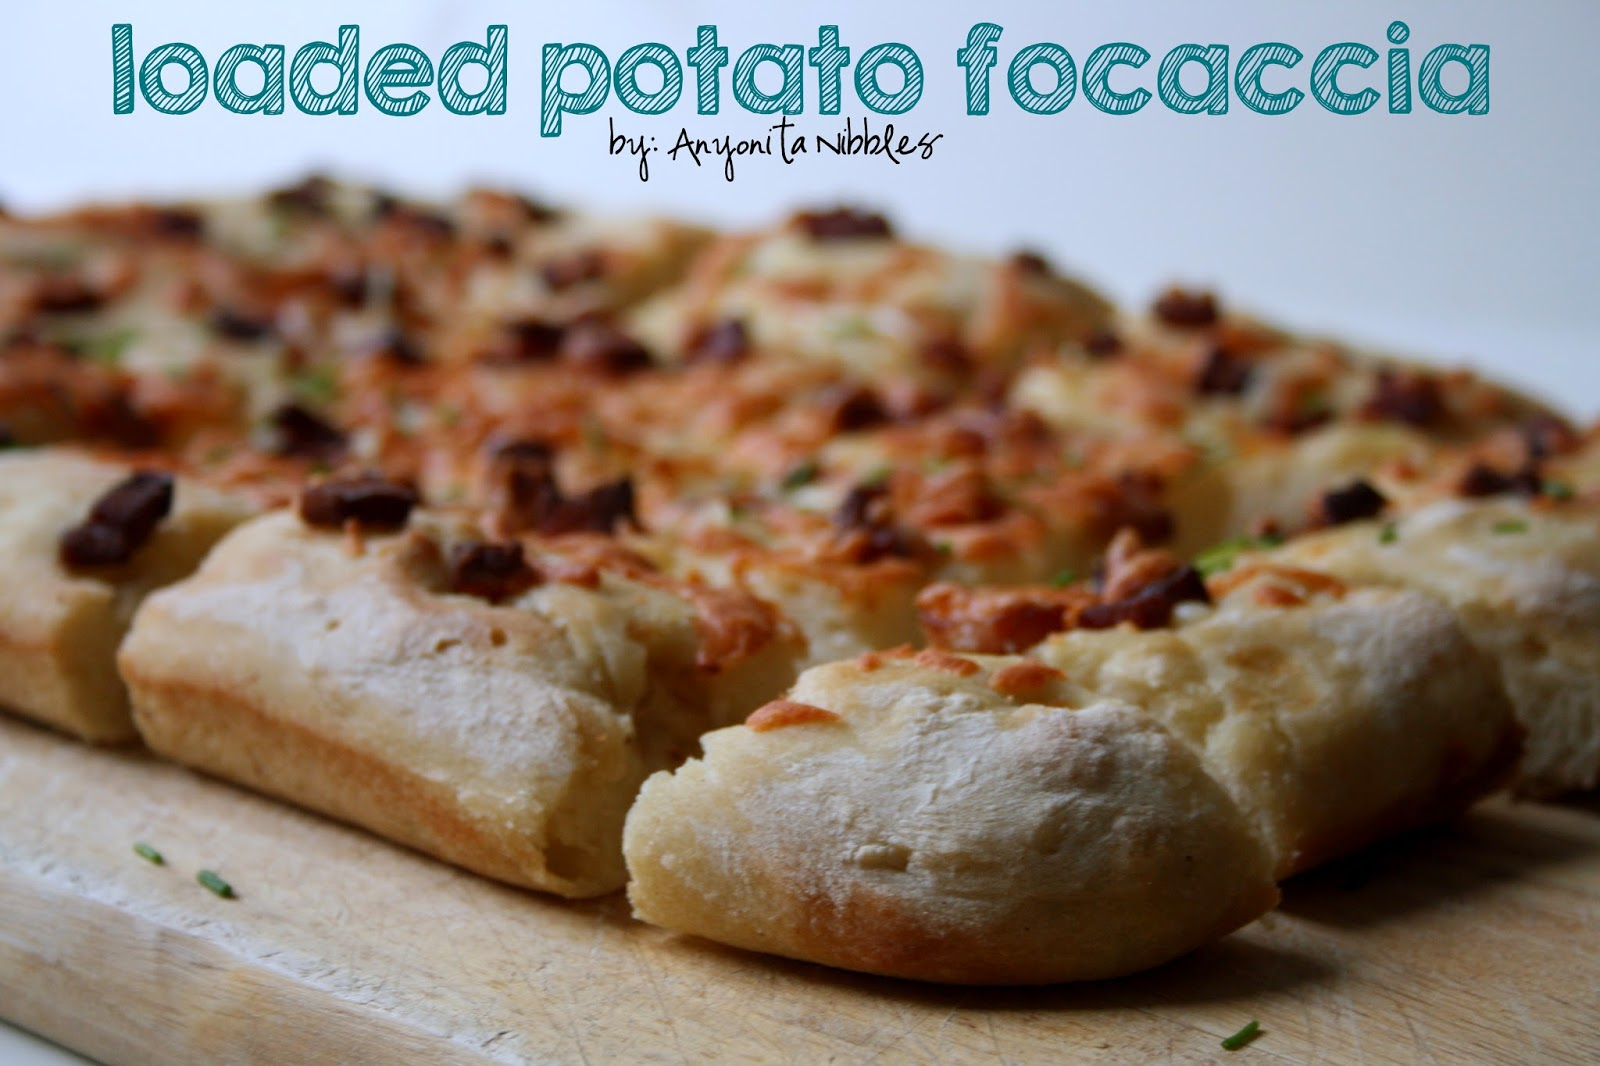 Stone baked Loaded Potato Focaccia by Anyonita Nibbles